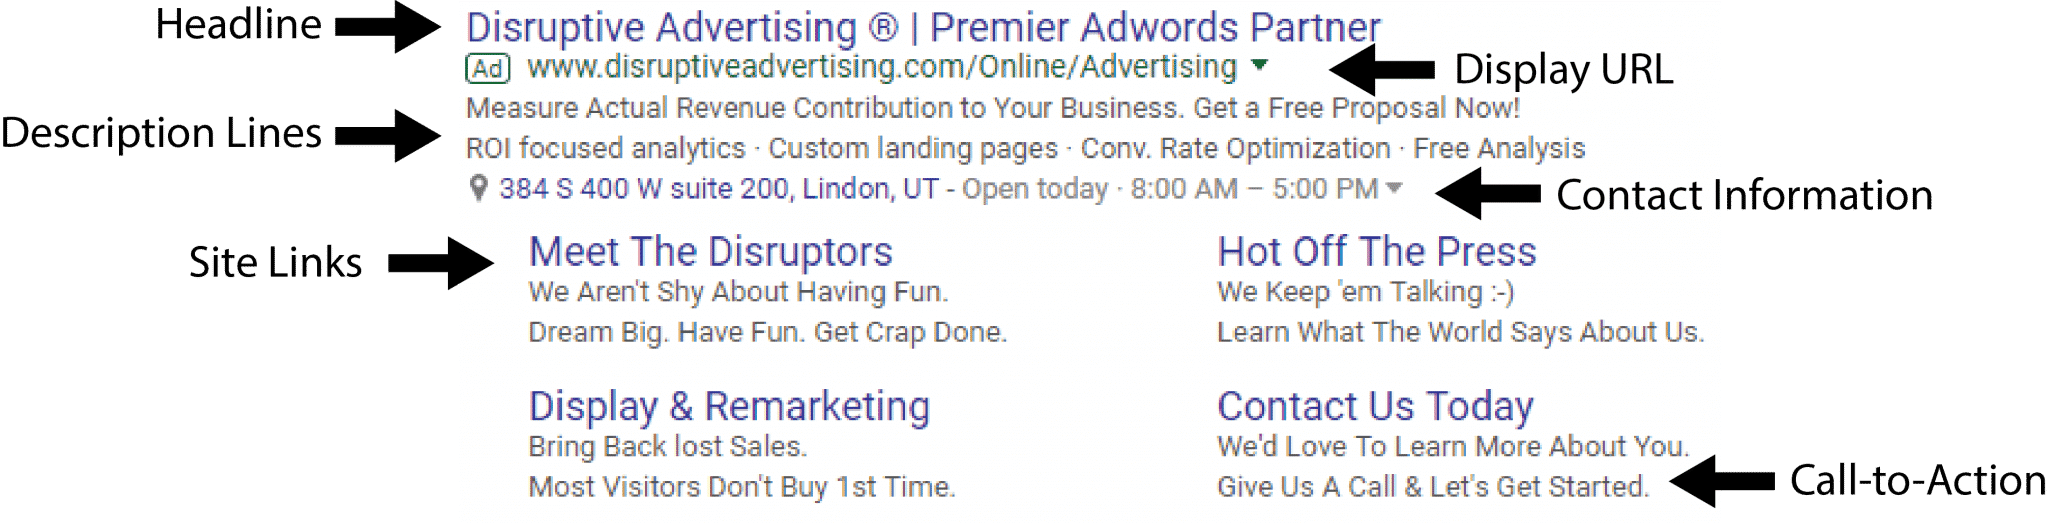 Google Ads: Anatomy of a Google Text Ad   Disruptive Advertising